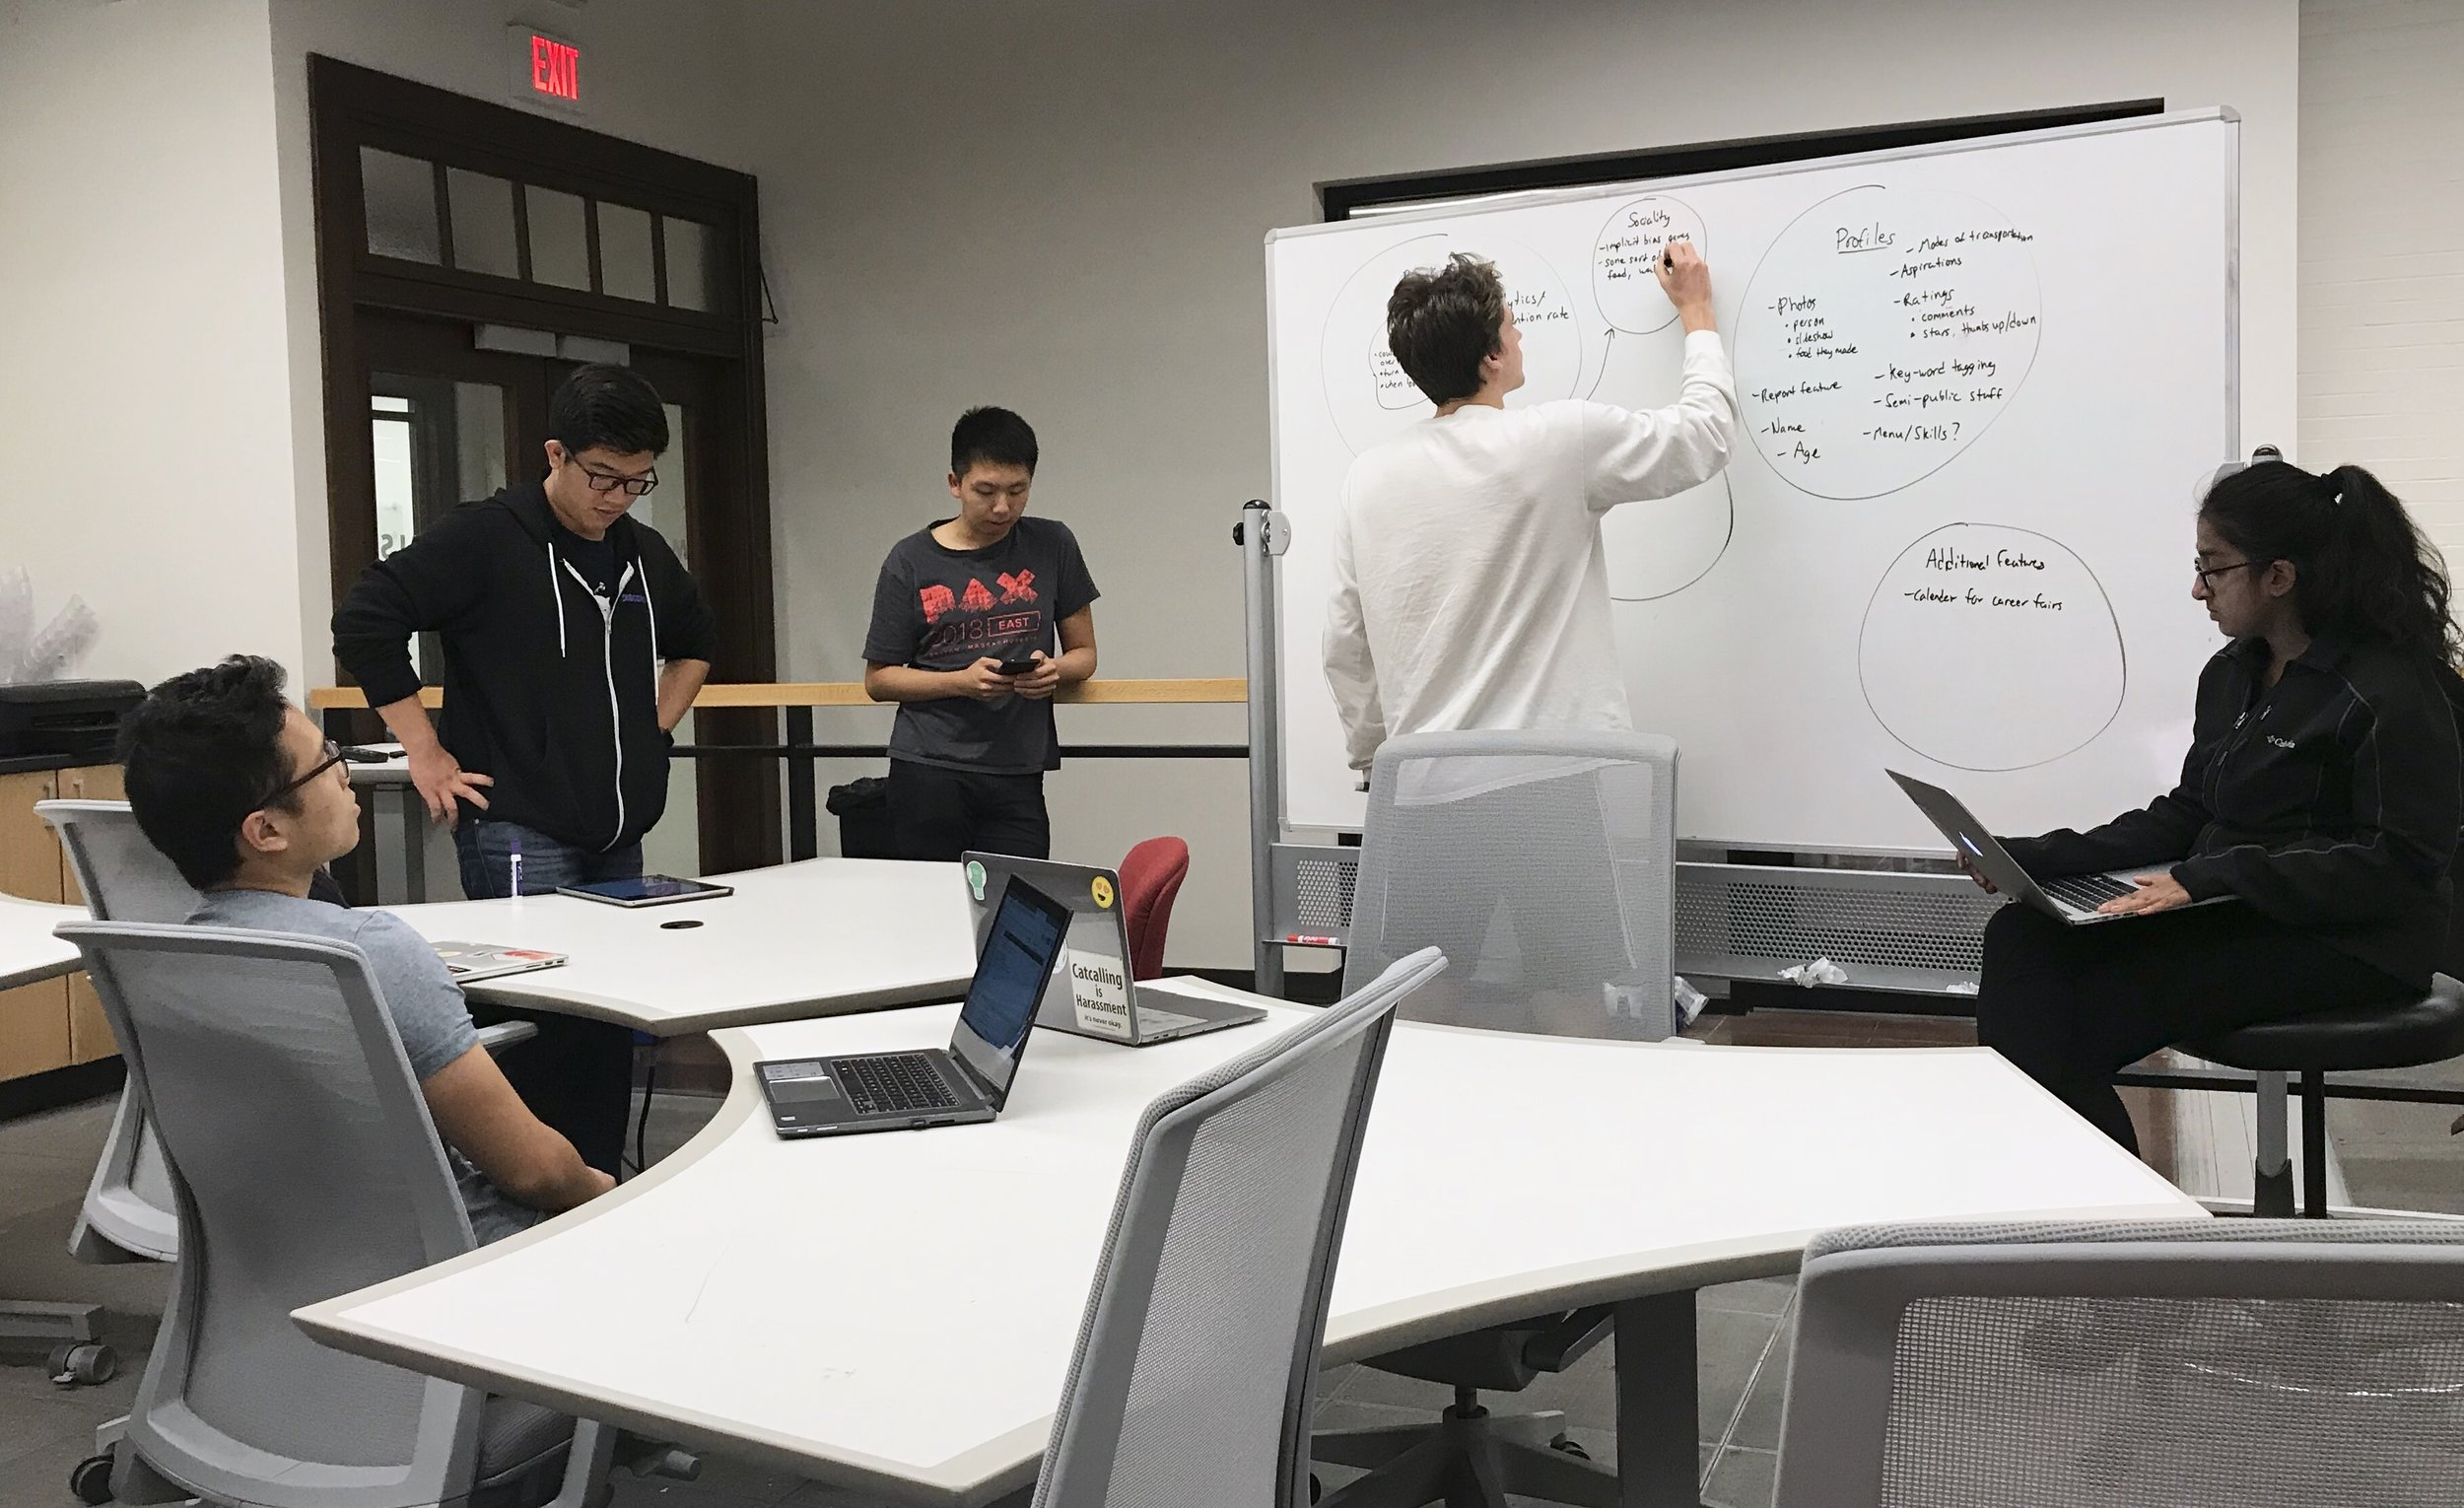 Feature generation white-boarding session, members looking at their screens to reference what they wrote, photo taken by me